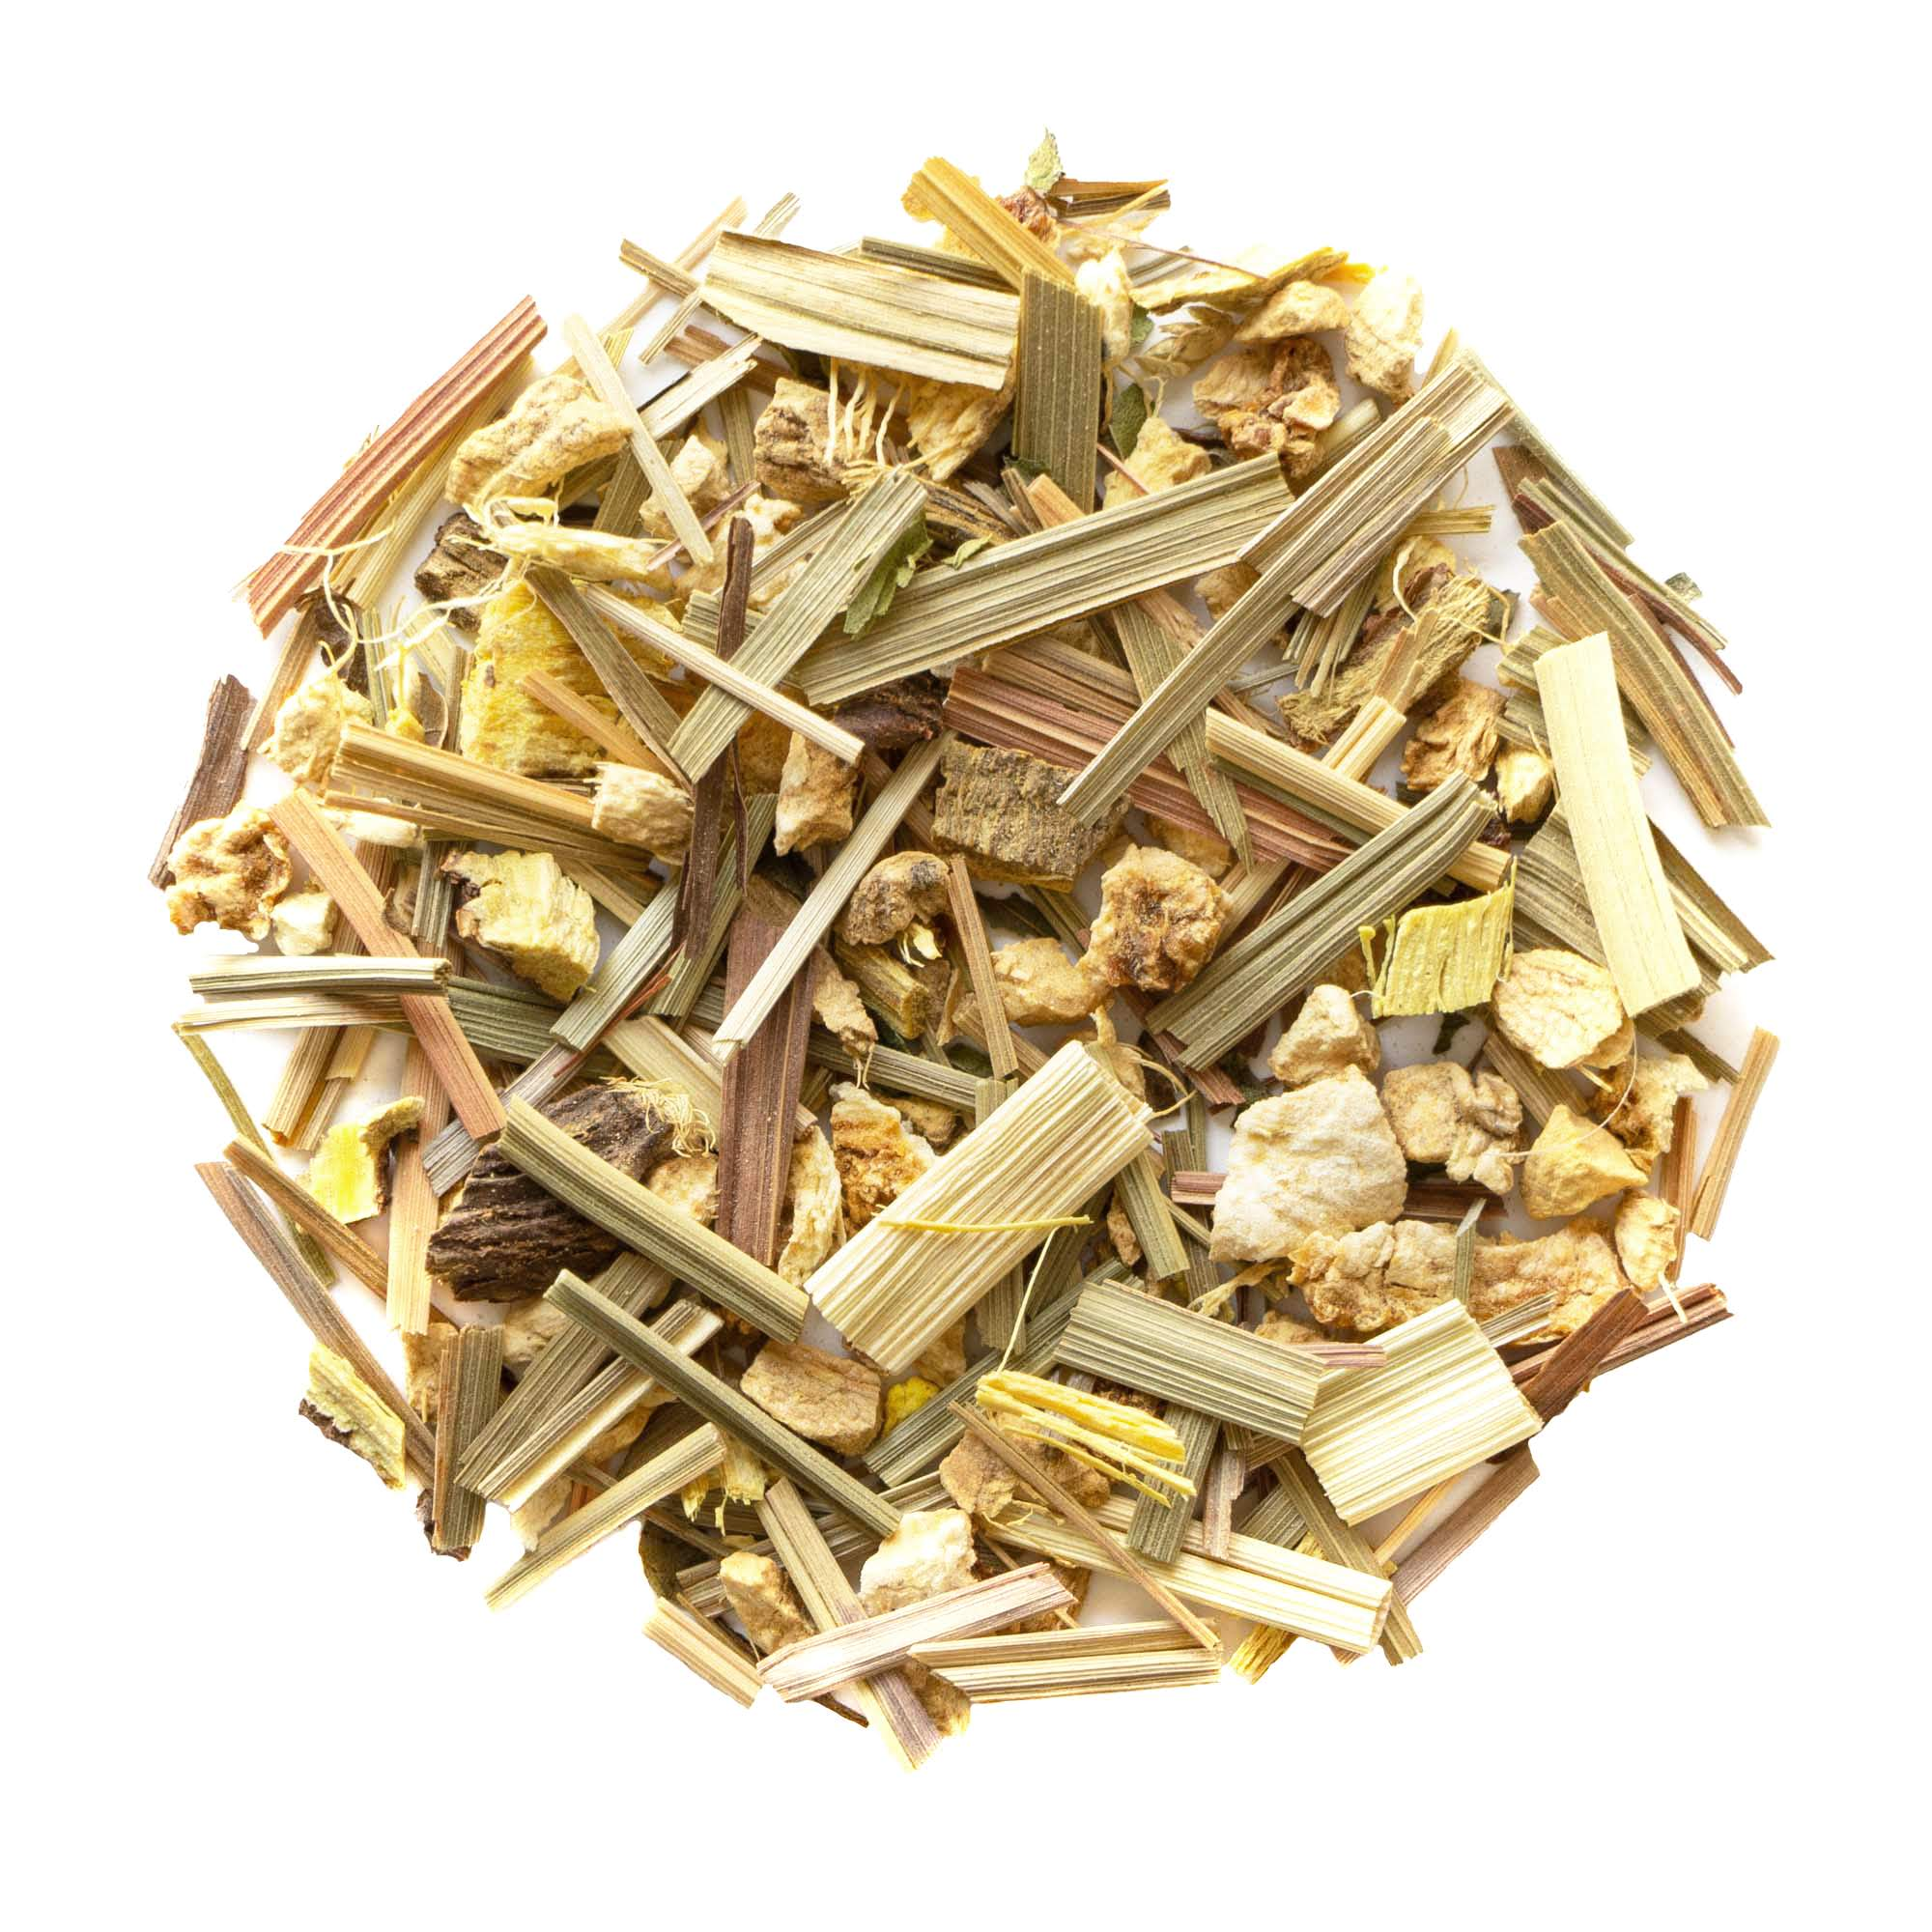 Gingery Teas - Ginger Based Loose Leaf Teas & Herbal Teas - Antioxidant & Anti-Inflammatory - Heavenly Tea Leaves